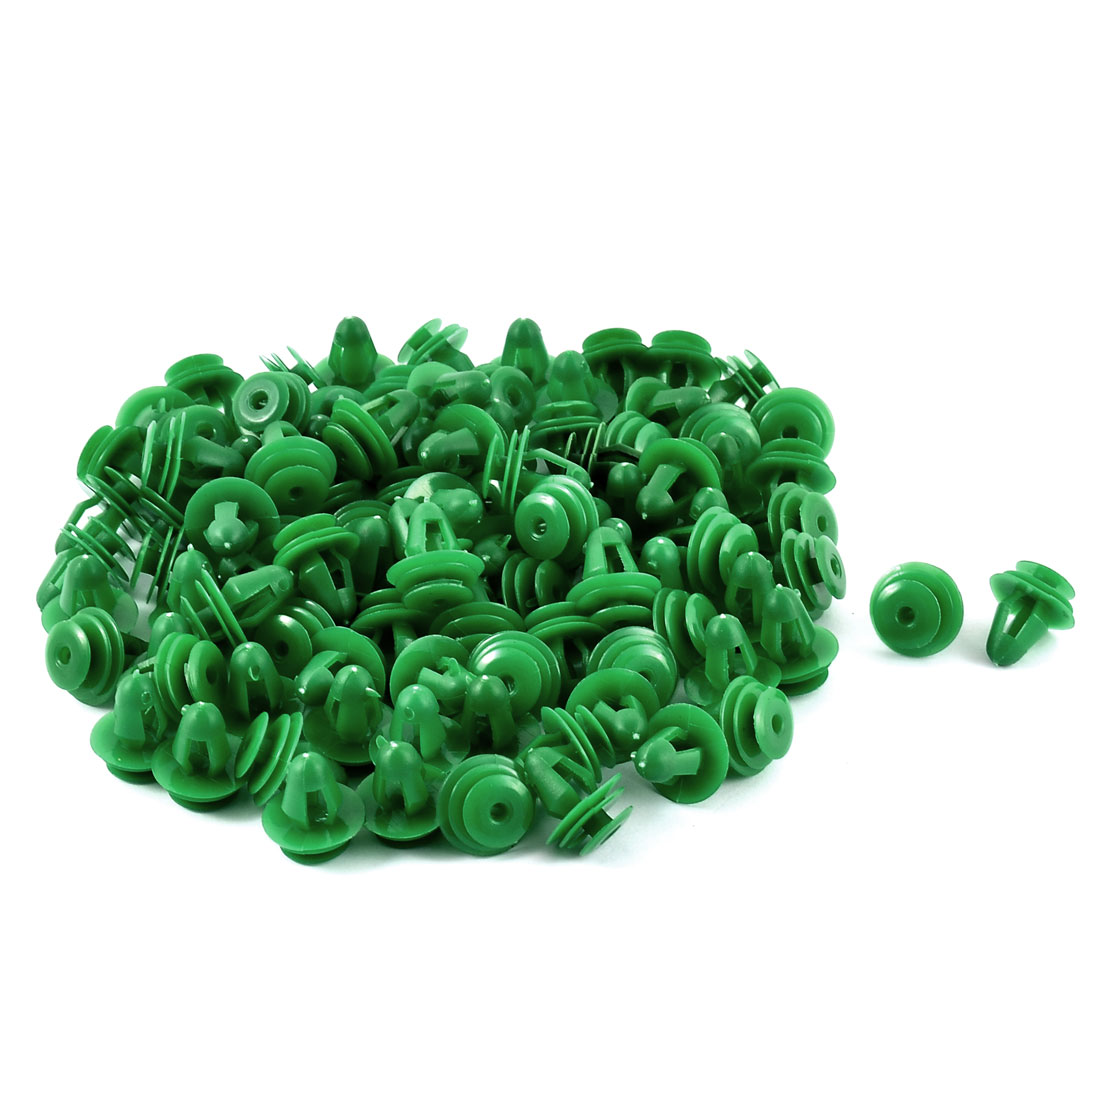 100 Pcs Plastic Rivet 8mm Hole Car Door Trim Panel Retainer Clip Green